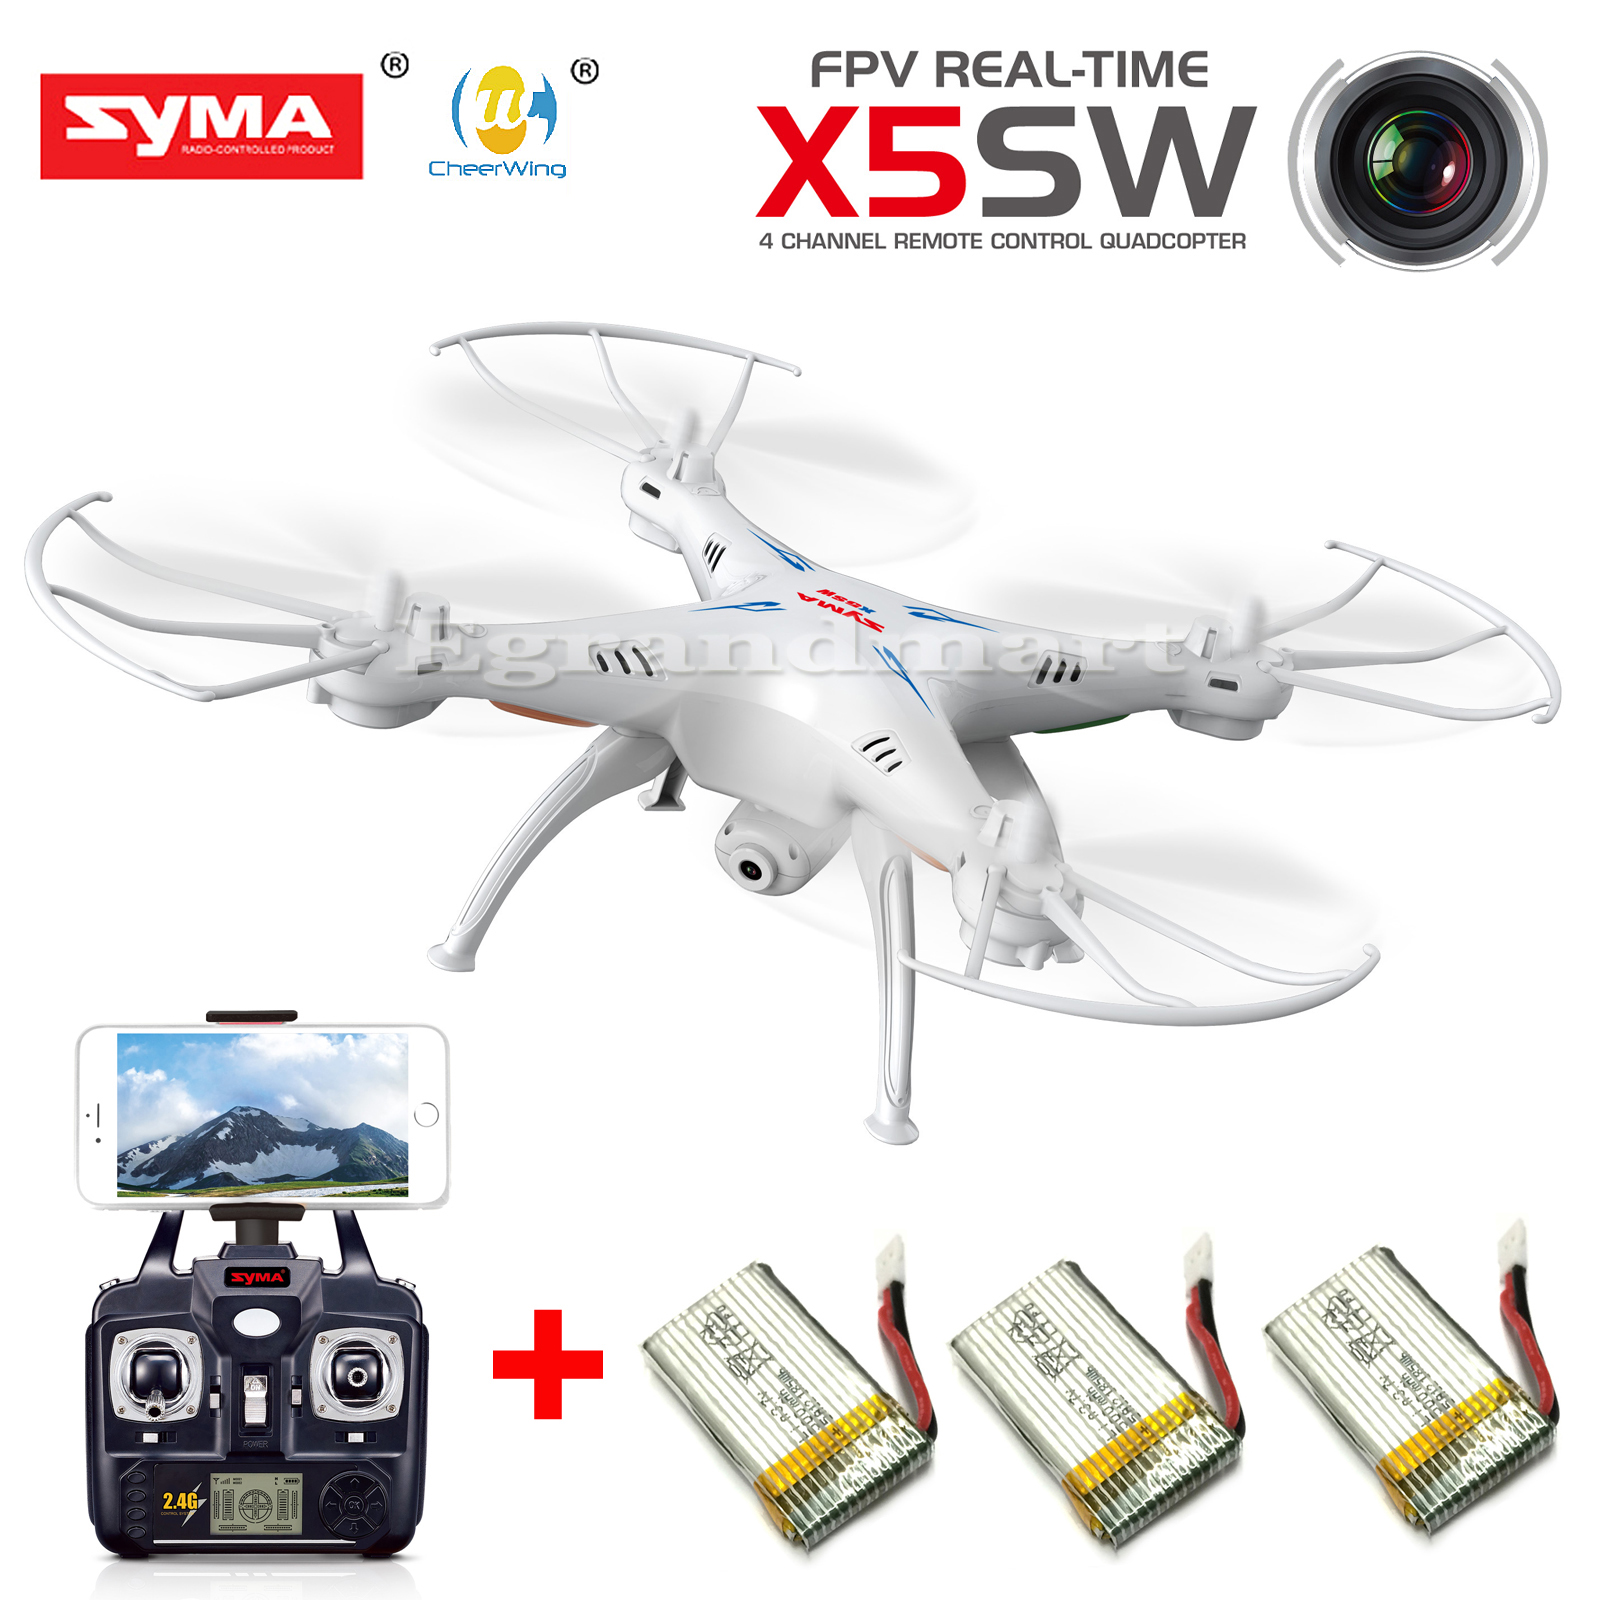 SYMA X5SW WiFi FPV 2.4Ghz 4CH RC Quadcopter Drone HD Camera RTF +3 Batteries